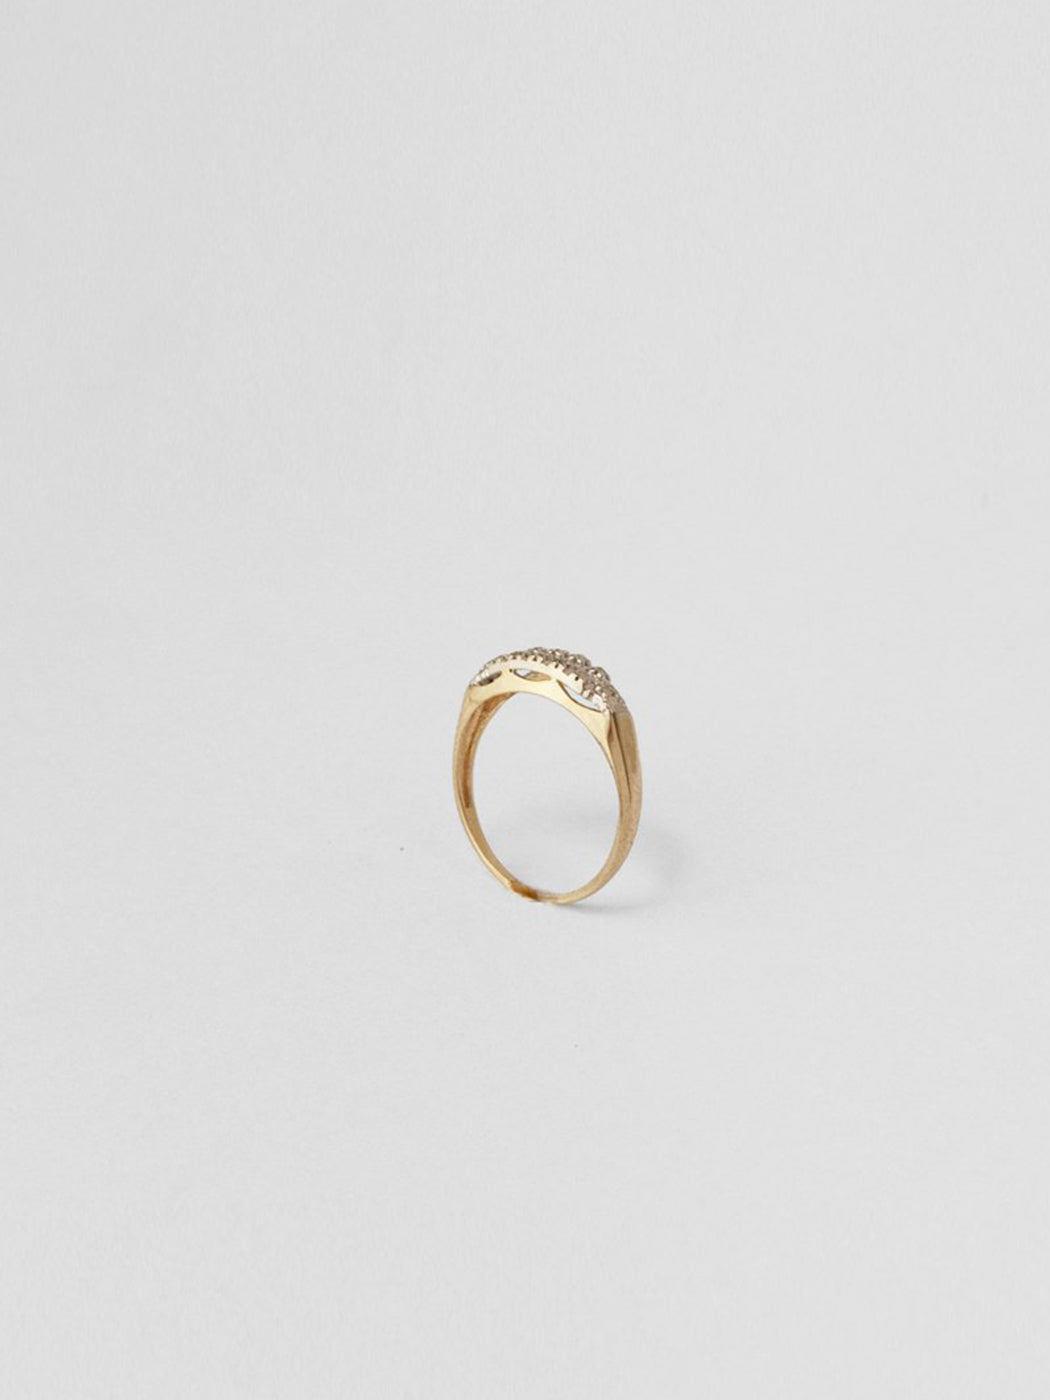 Petite Diamond Band / 14Kt Yellow Gold